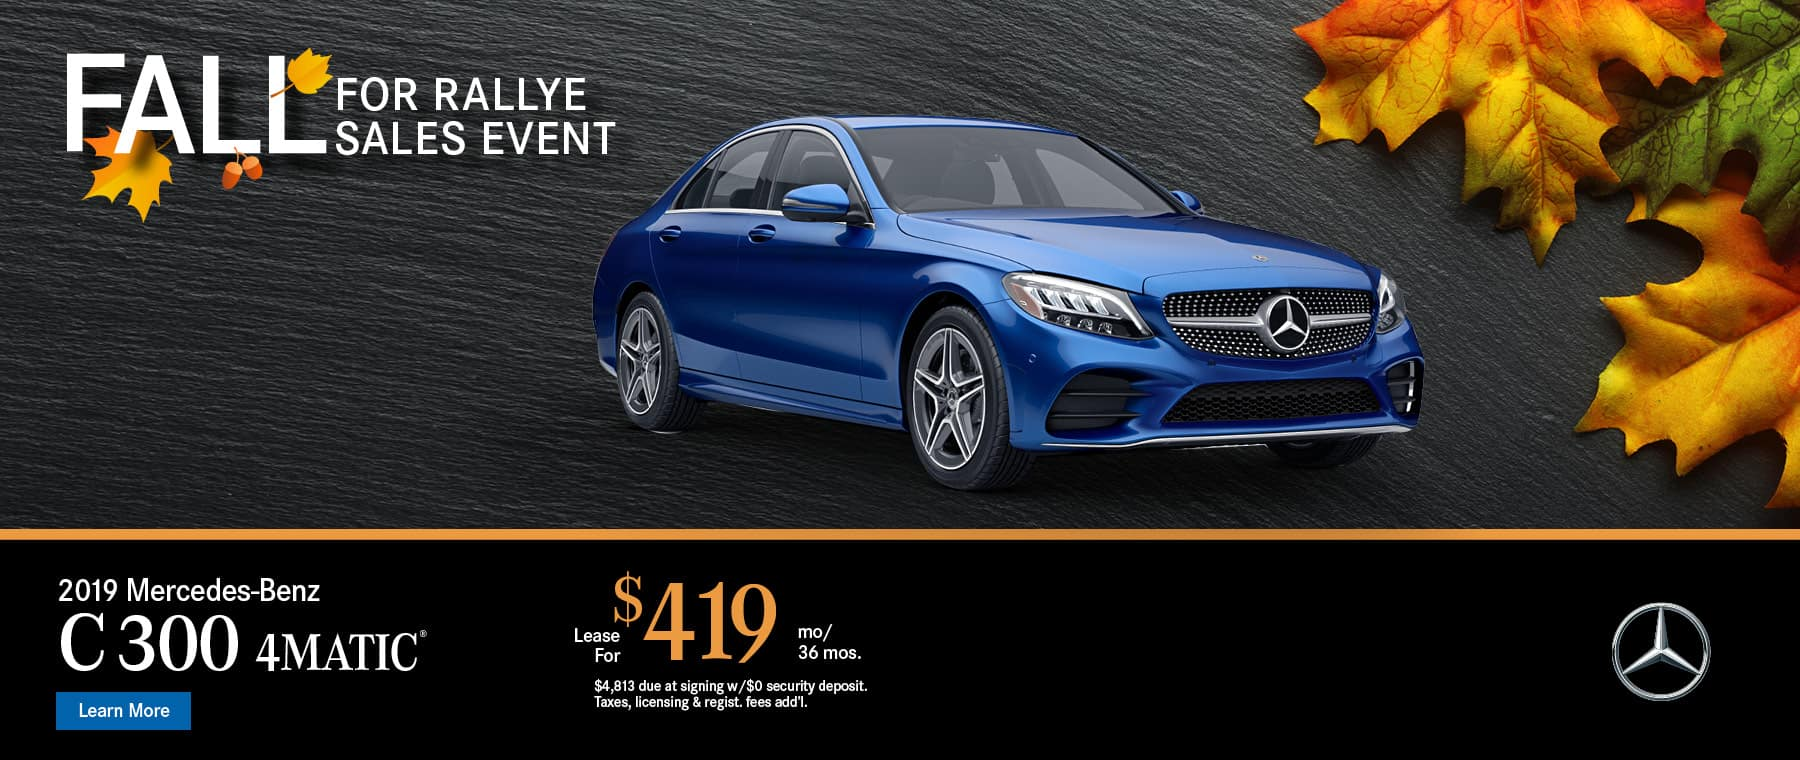 Rallye Motors | Mercedes-Benz Dealership in Roslyn, NY